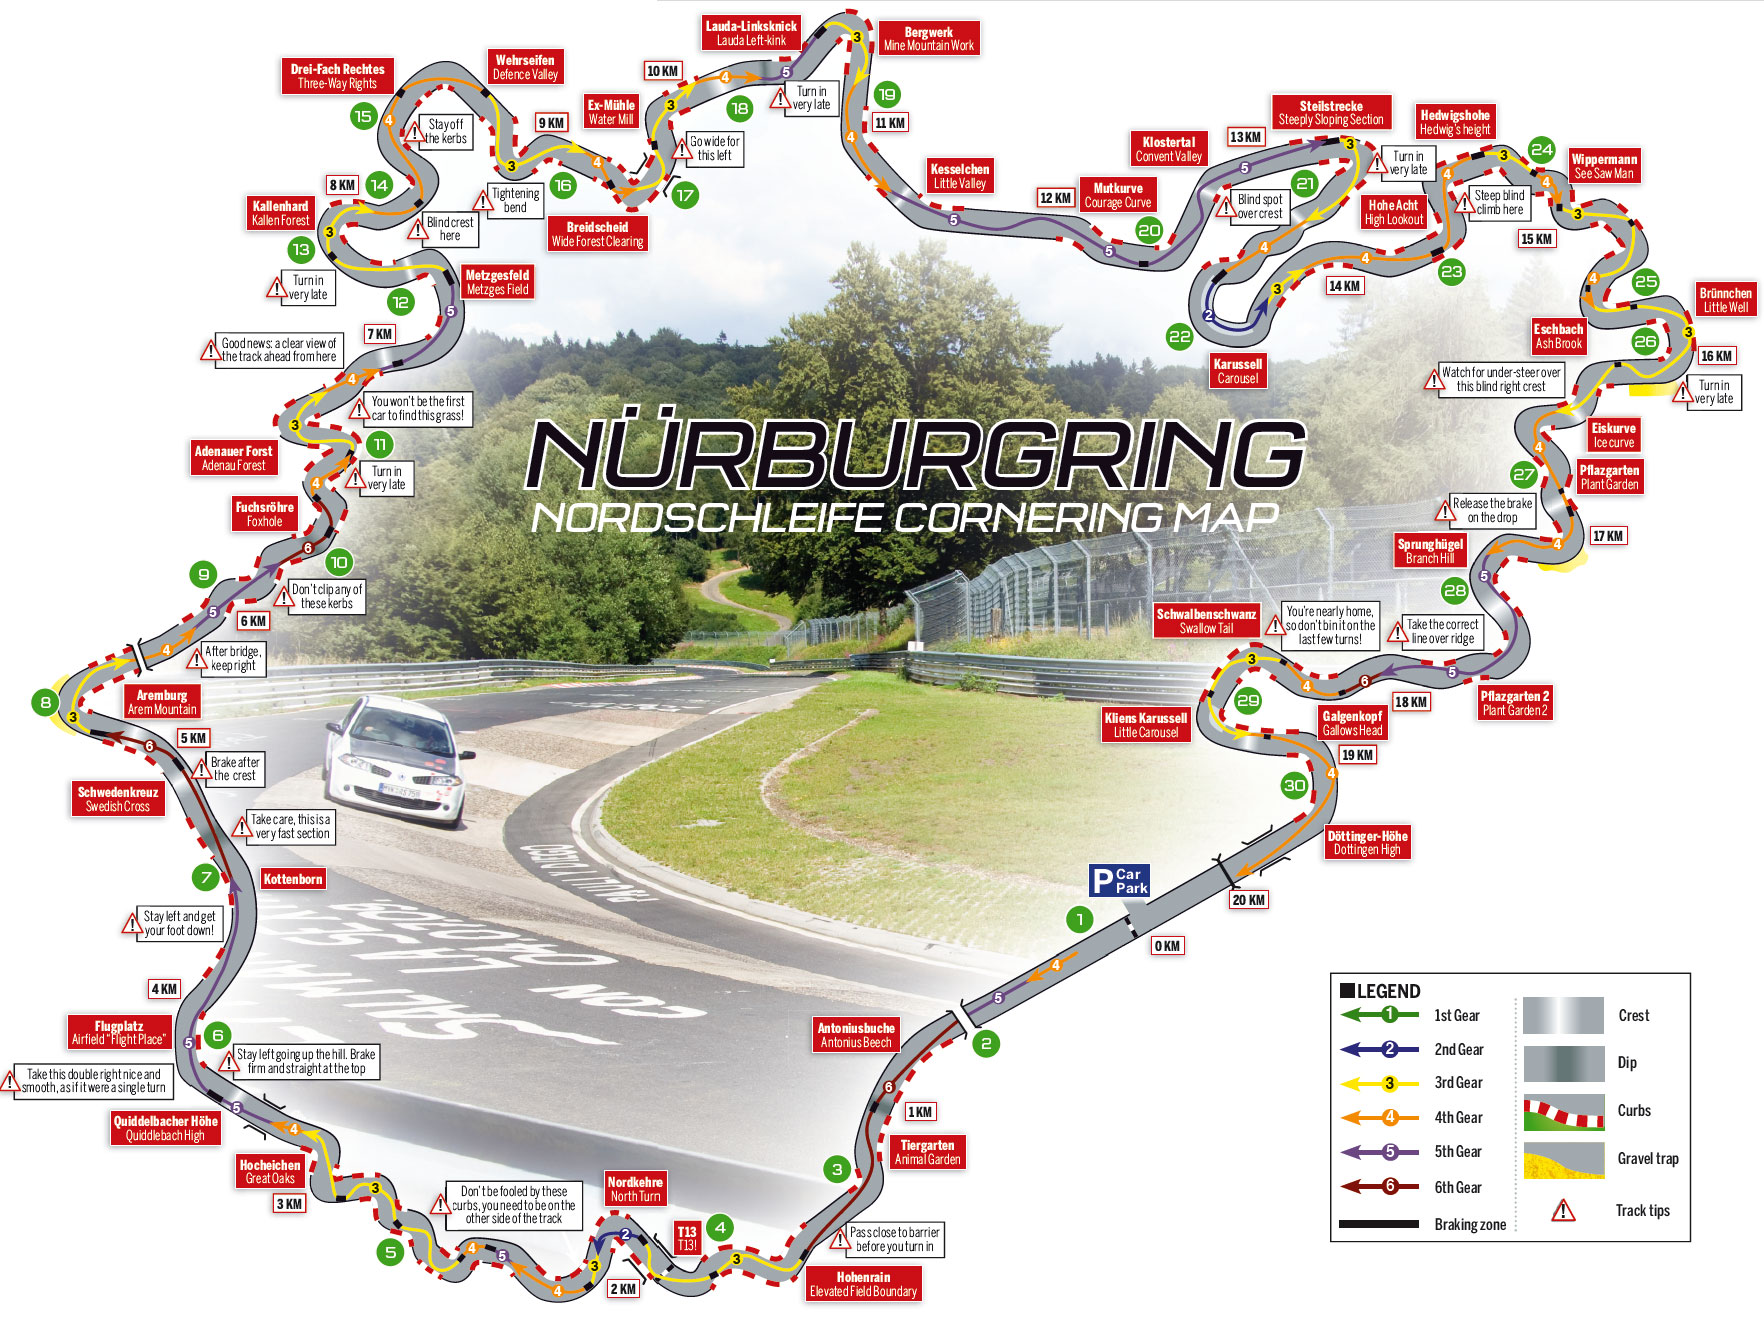 nurburgring-cornering-map-guide.jpg